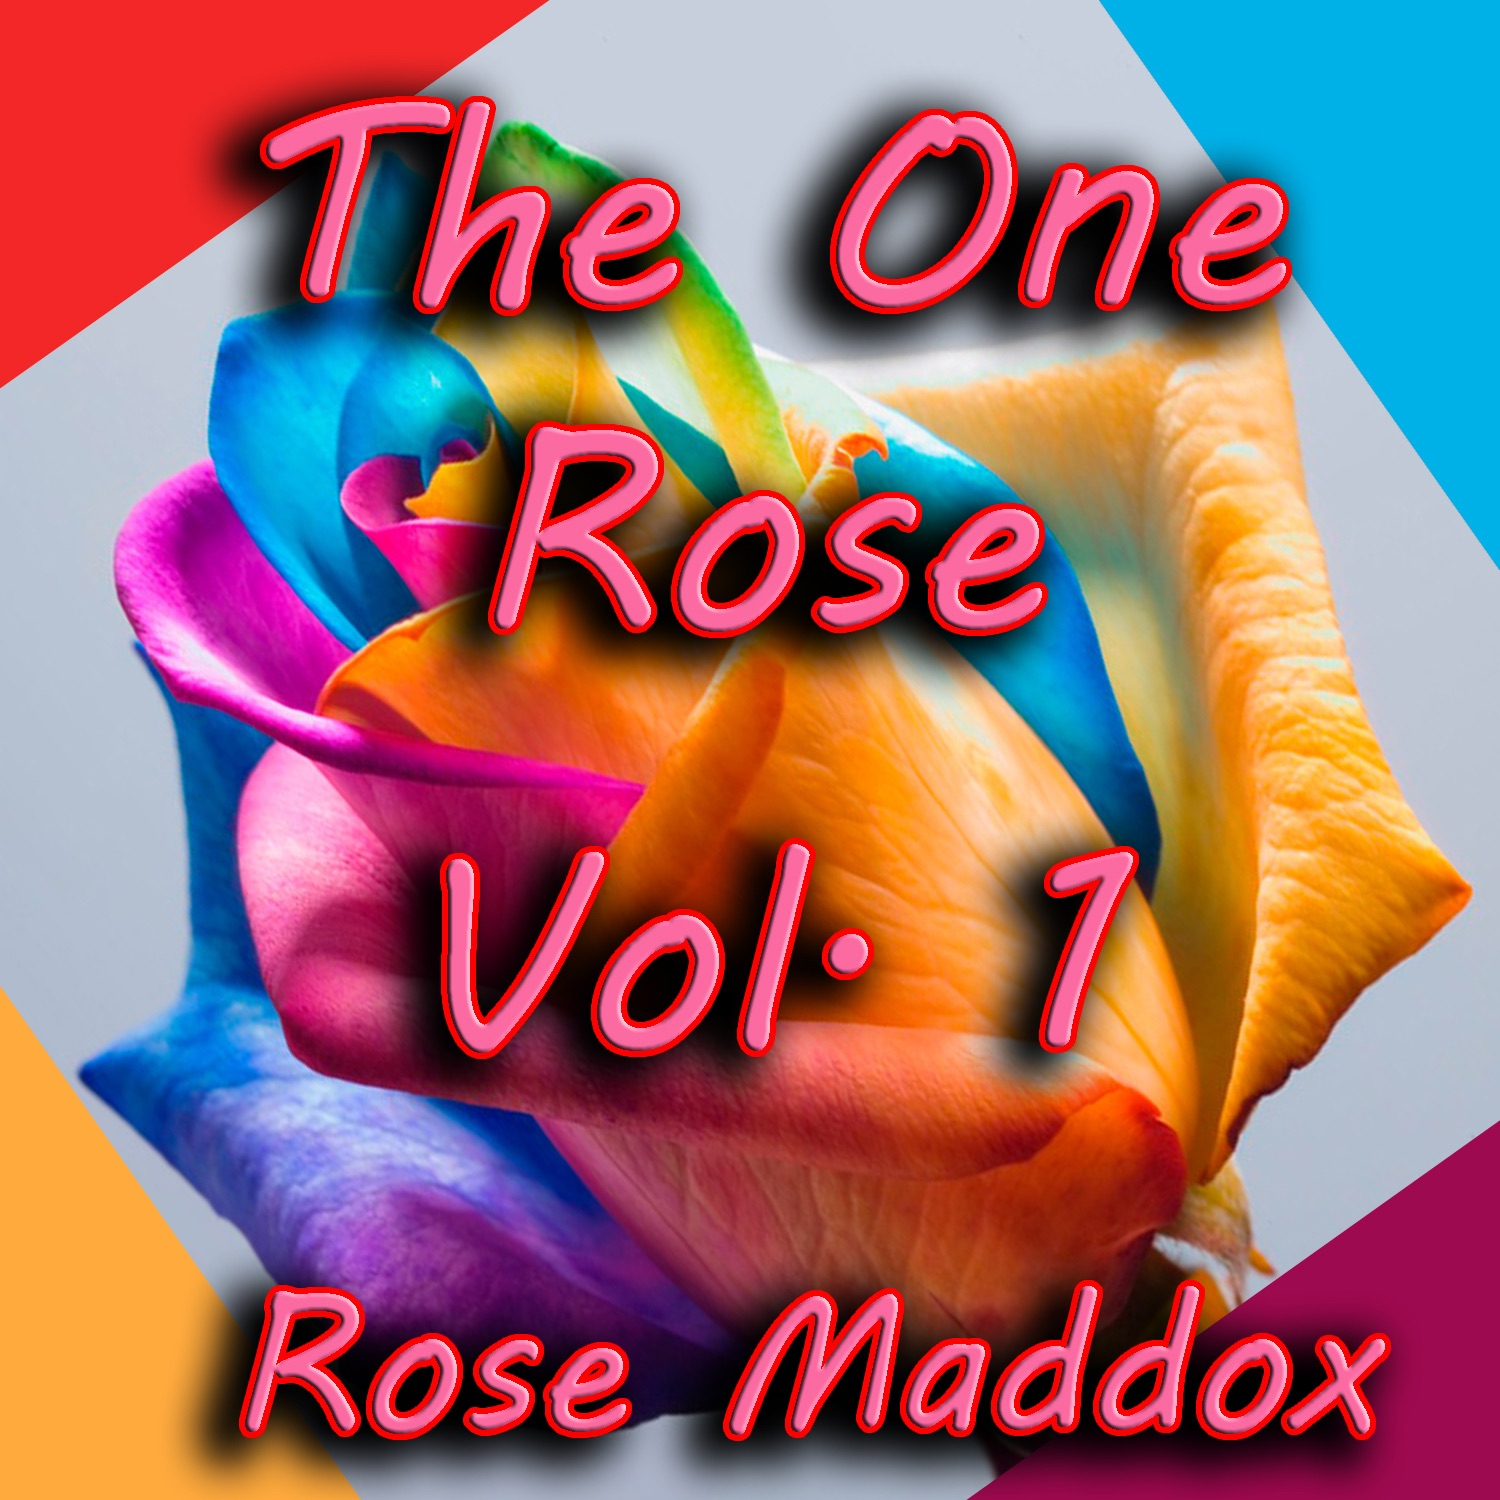 The One Rose, Vol. 1